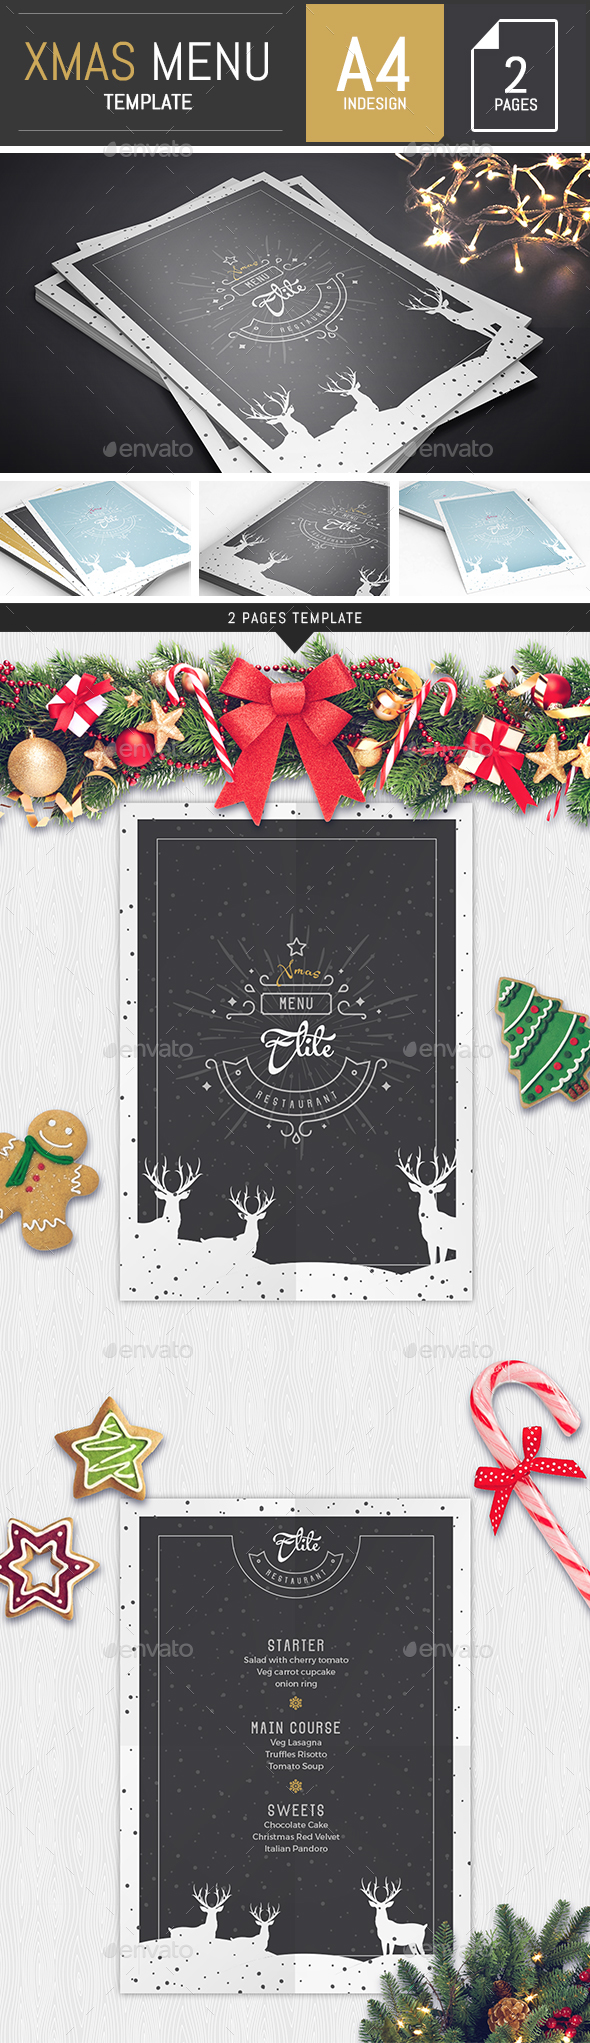 A4 Modern Christmas Menu Template - Food Menus Print Templates